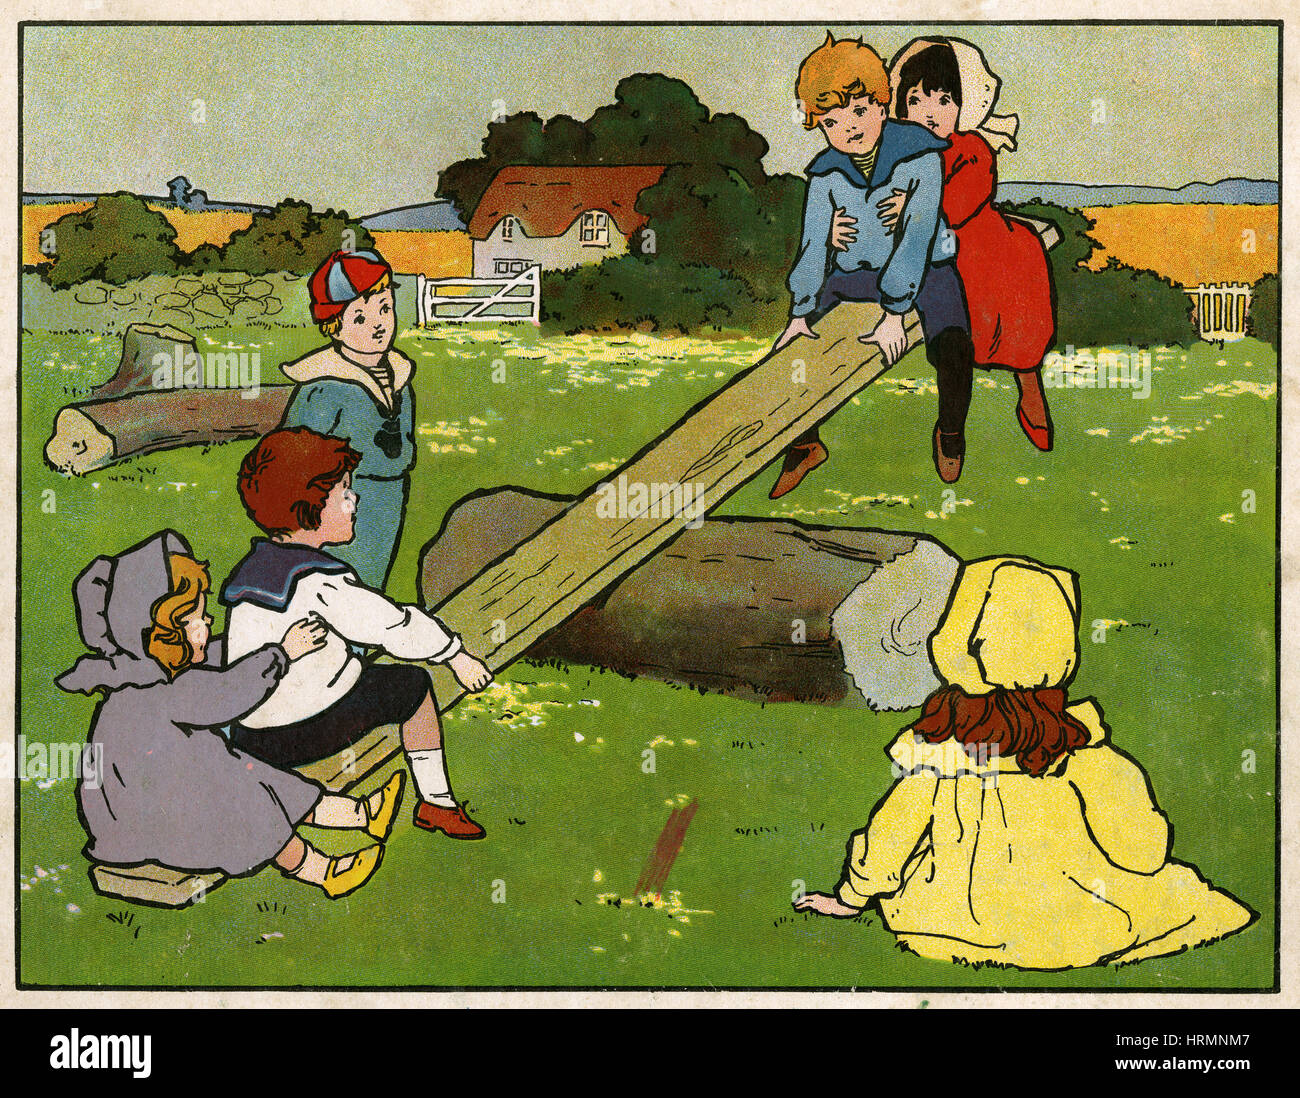 Antique c1890 English children's book illustration, See-Saw Margery Daw. - Stock Image